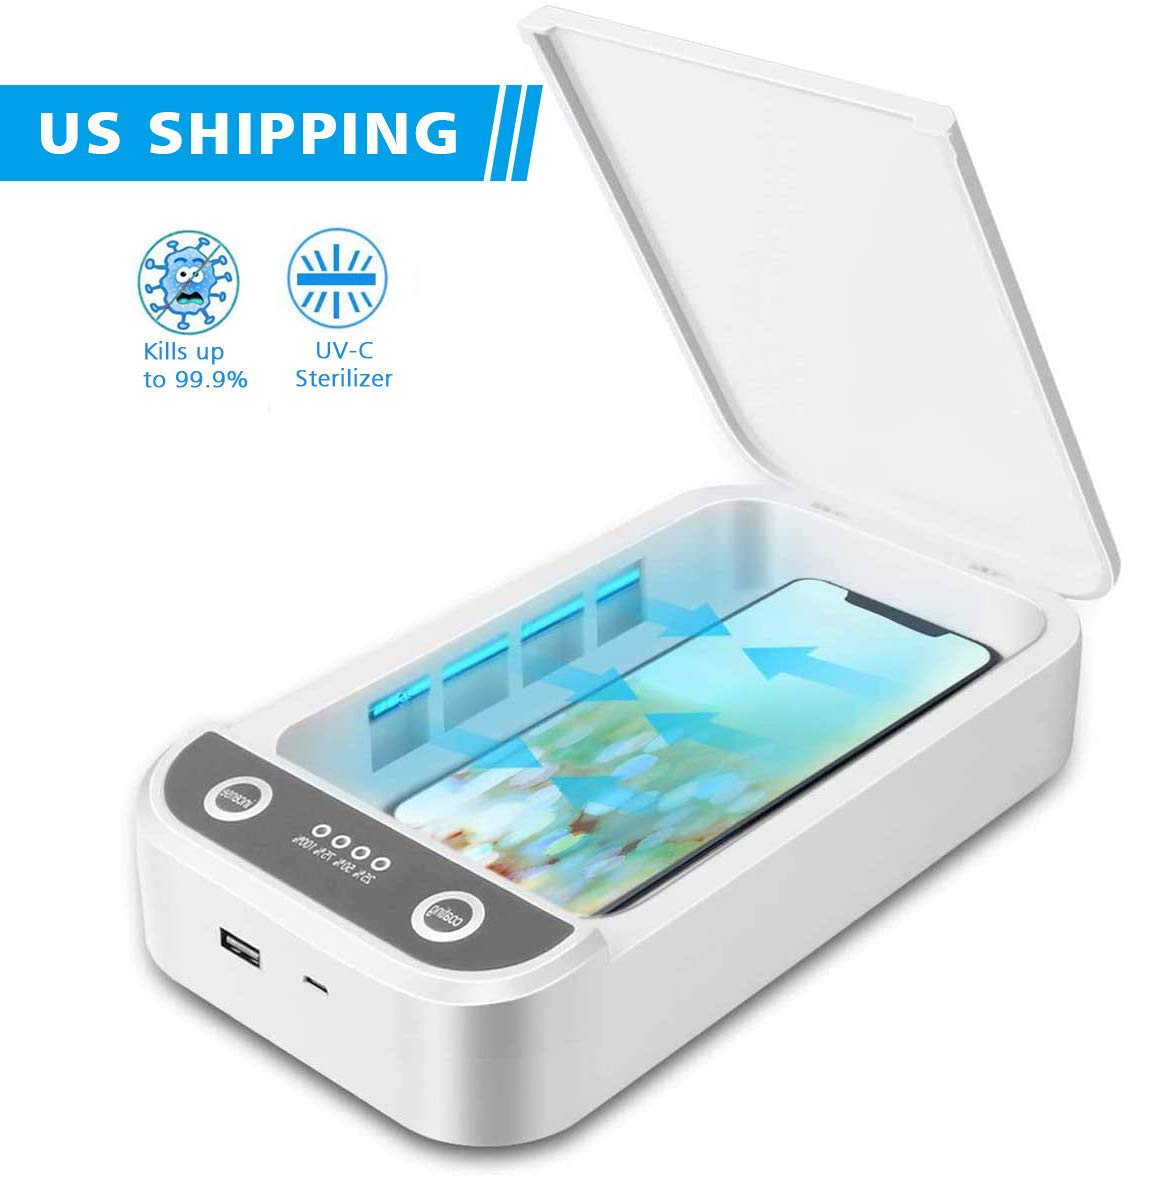 FCNEHLM Cell Phone Clean Case - Portable UV Phone Cleaner Box with USB Charging, Aromatherapy Function Disinfector, Cell Phone Cleaners for All iOS Android Smartphones (White)